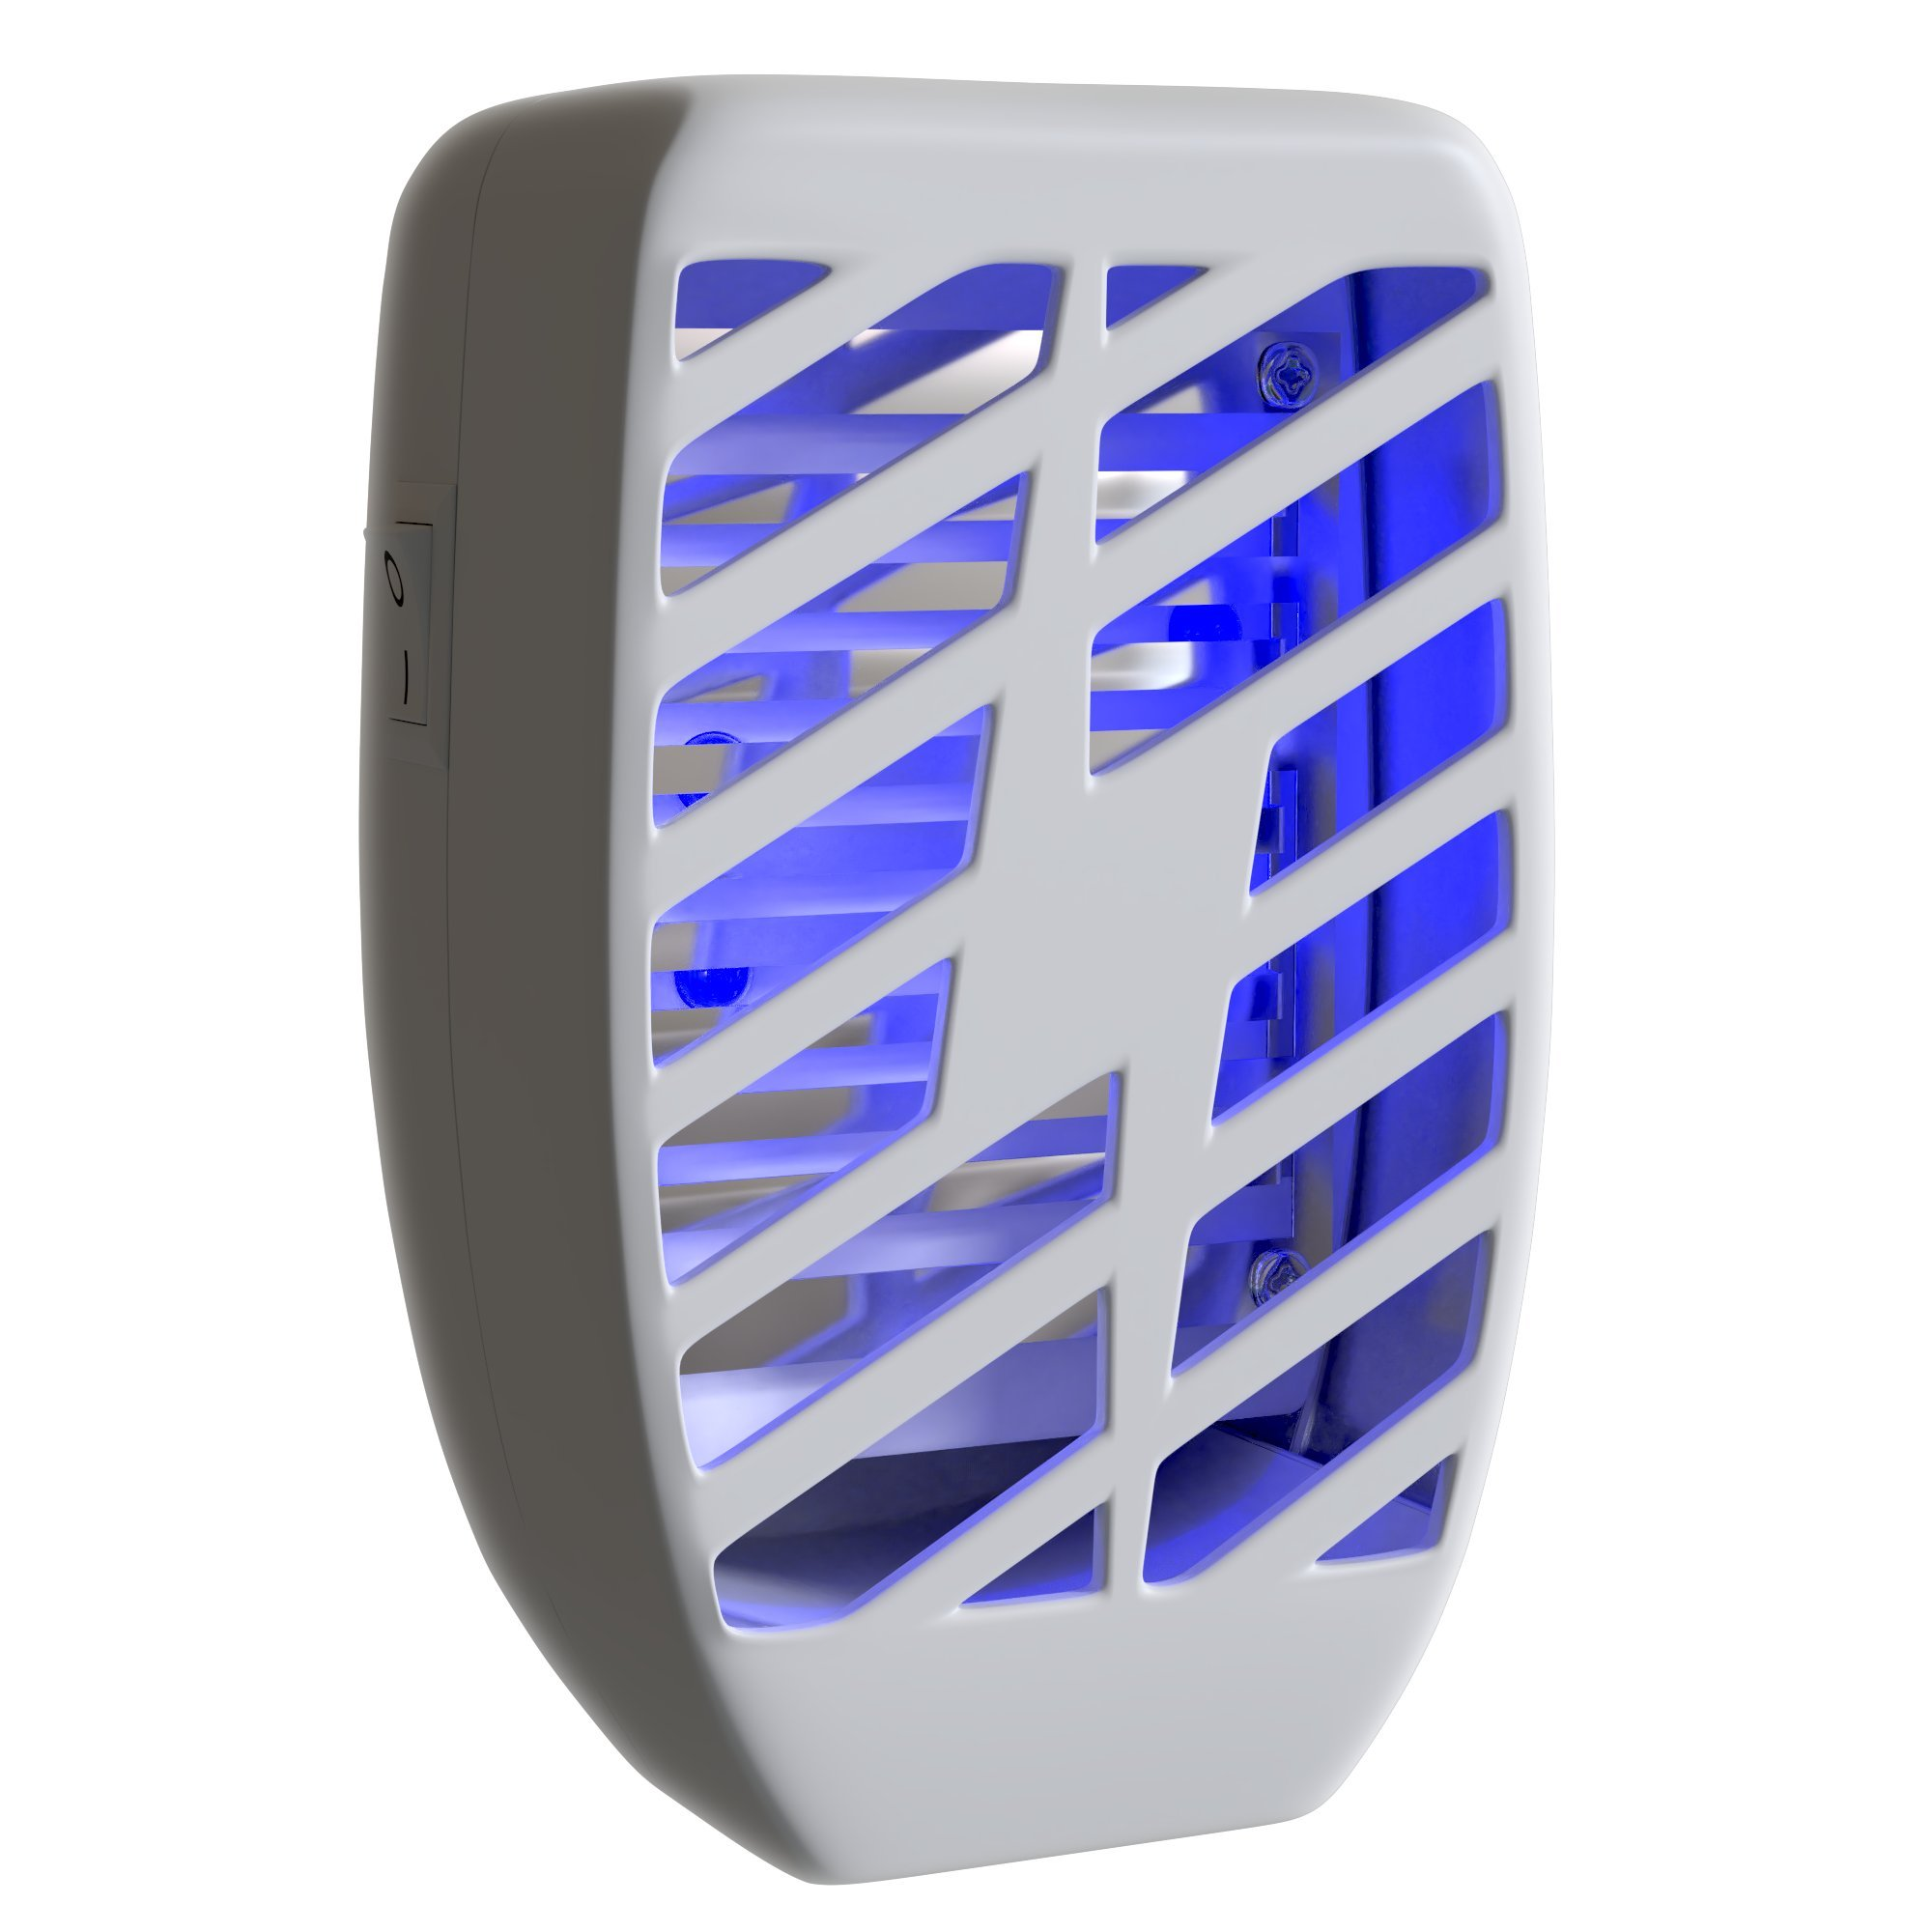 Bug Zapper & Electric Indoor Insect Killer Plug In – Mosquito, Bug, Fly & Other Pests Trap – Powerful 2500V Grid – Emits water vapors, CO2 and UV light to attract and kill most flying insects - Indoor by Way 2 Cool